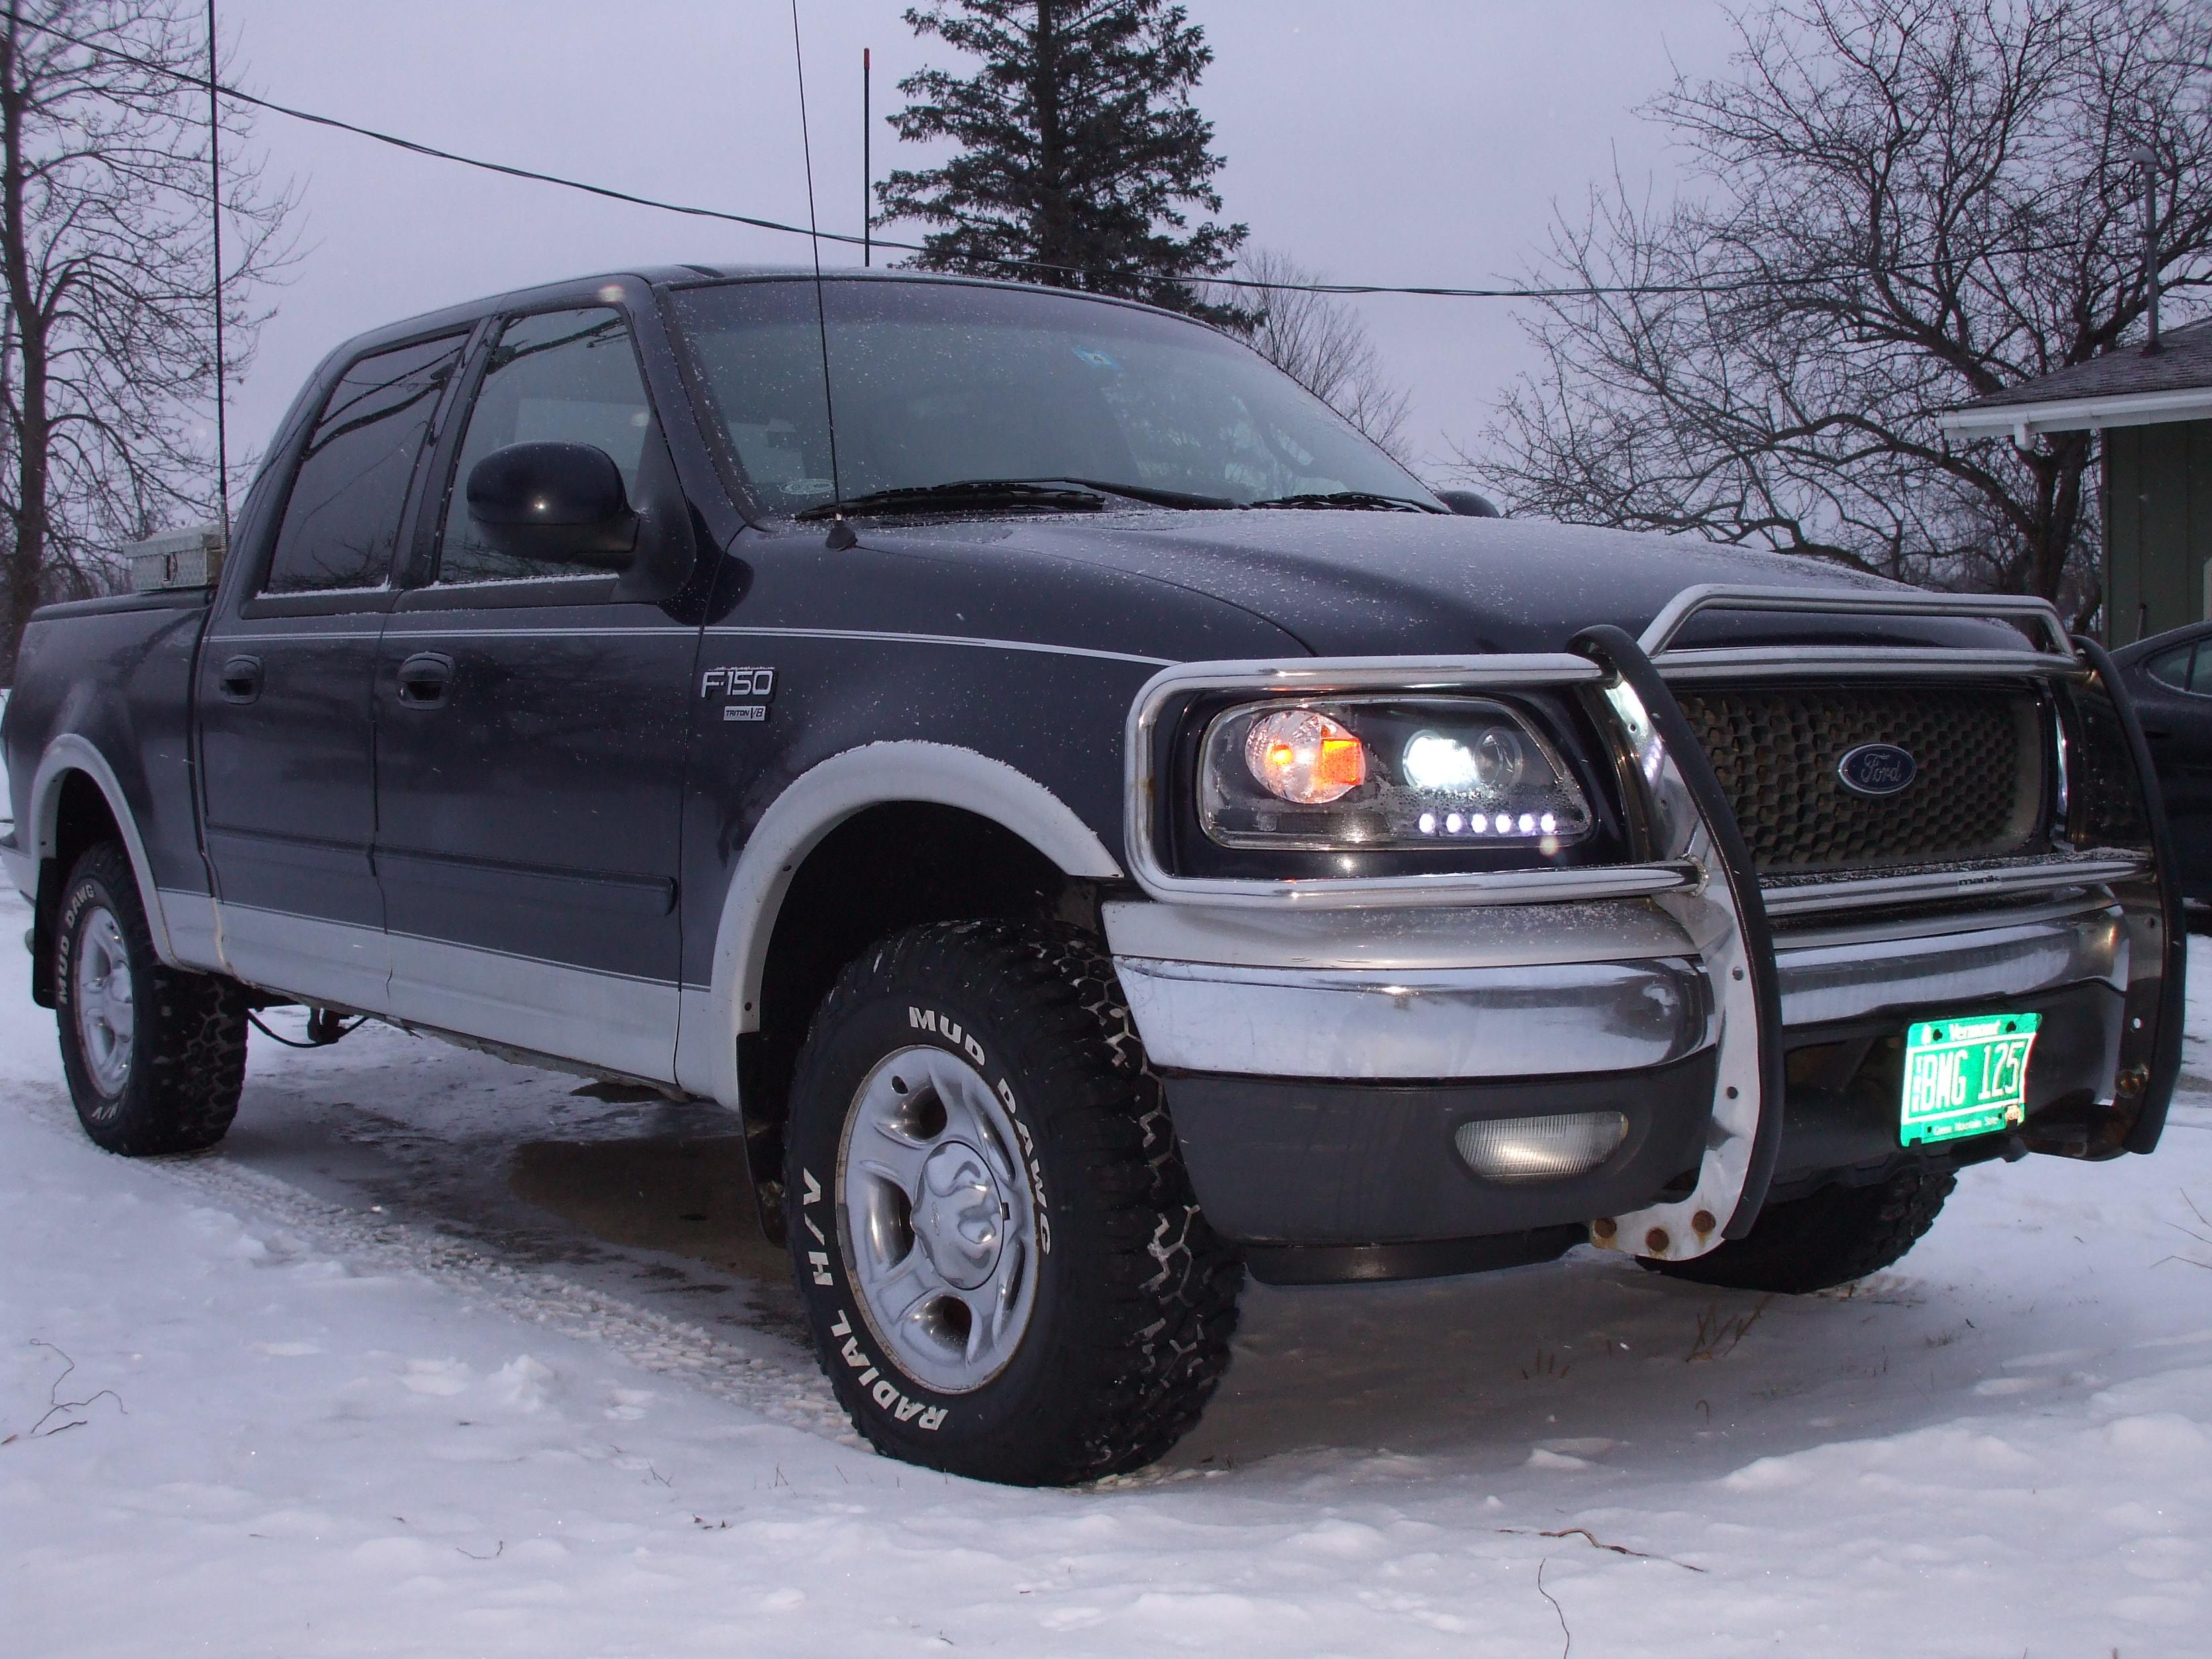 iceicedavey 2001 ford f150 supercrew cab specs photos modification info at cardomain. Black Bedroom Furniture Sets. Home Design Ideas